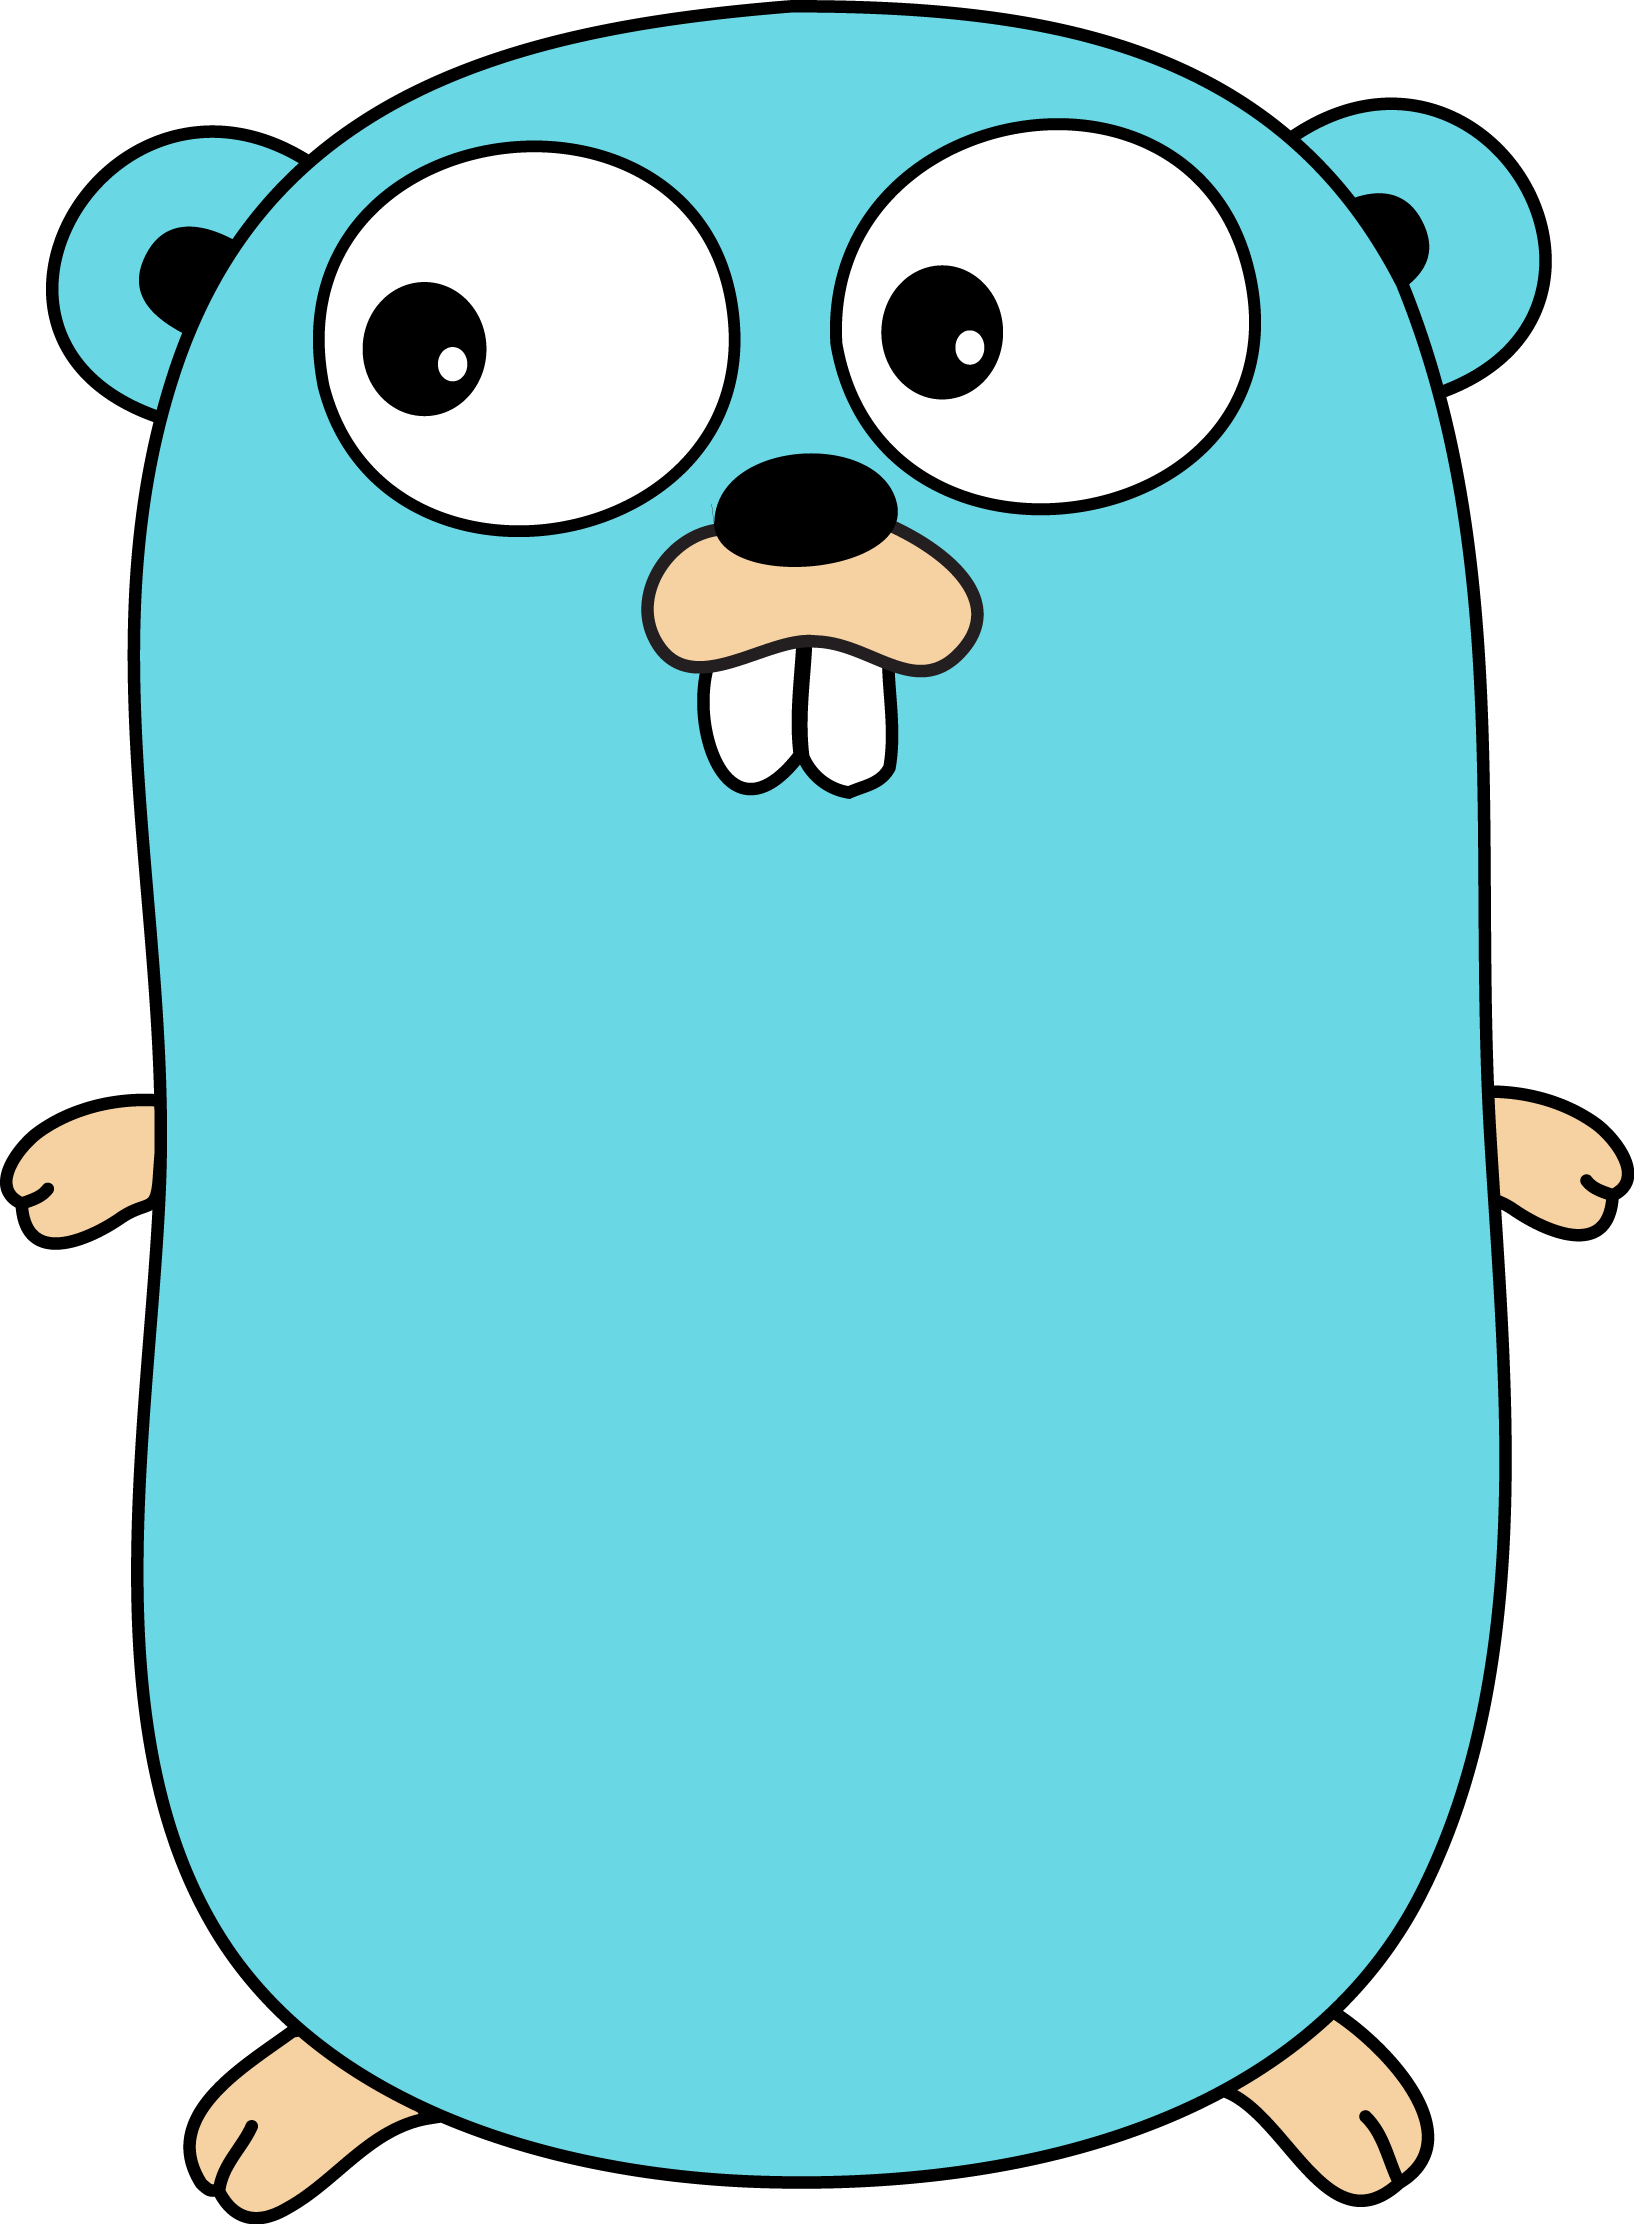 Golang - What are the best languages to learn for embedded